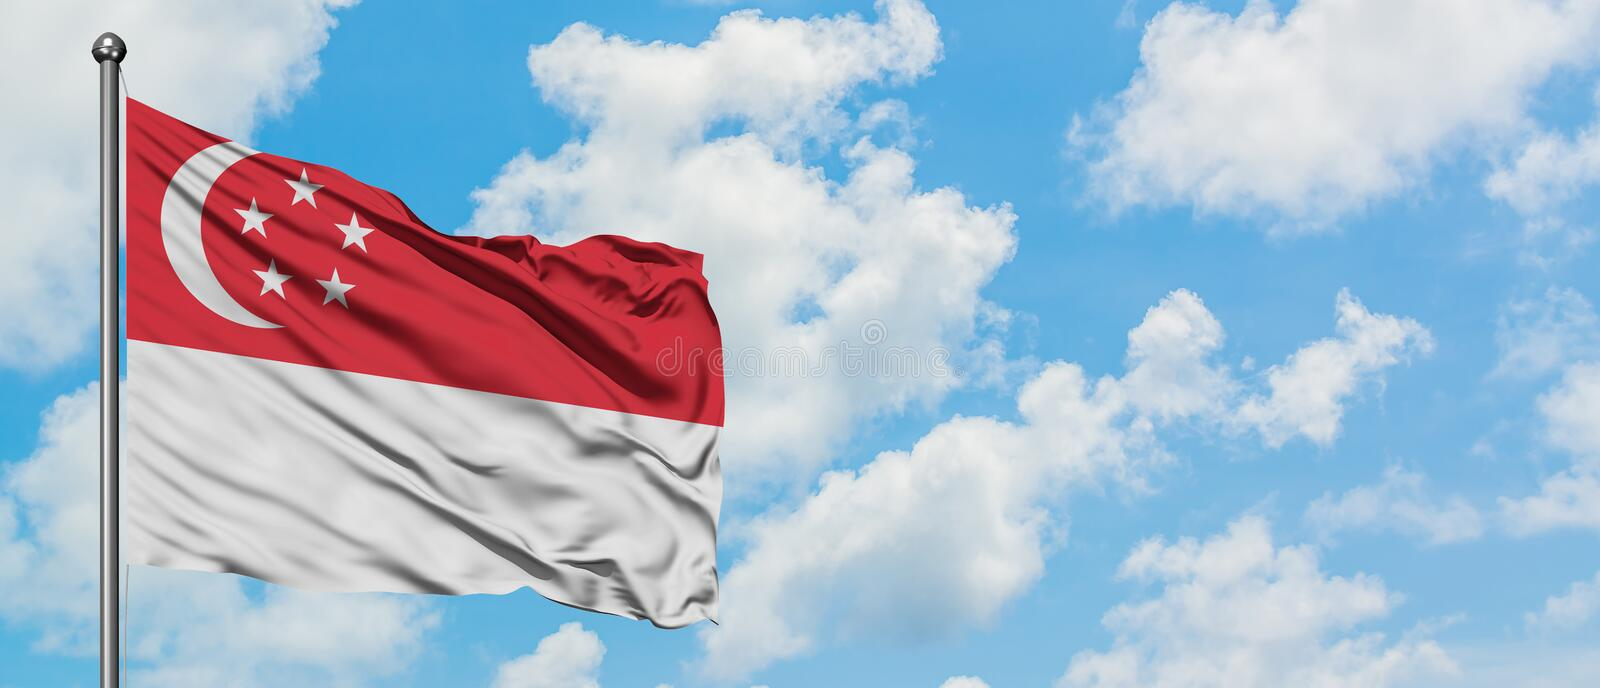 Singapore flag waving in the wind against white cloudy blue sky. Diplomacy concept, international relations.  royalty free stock images